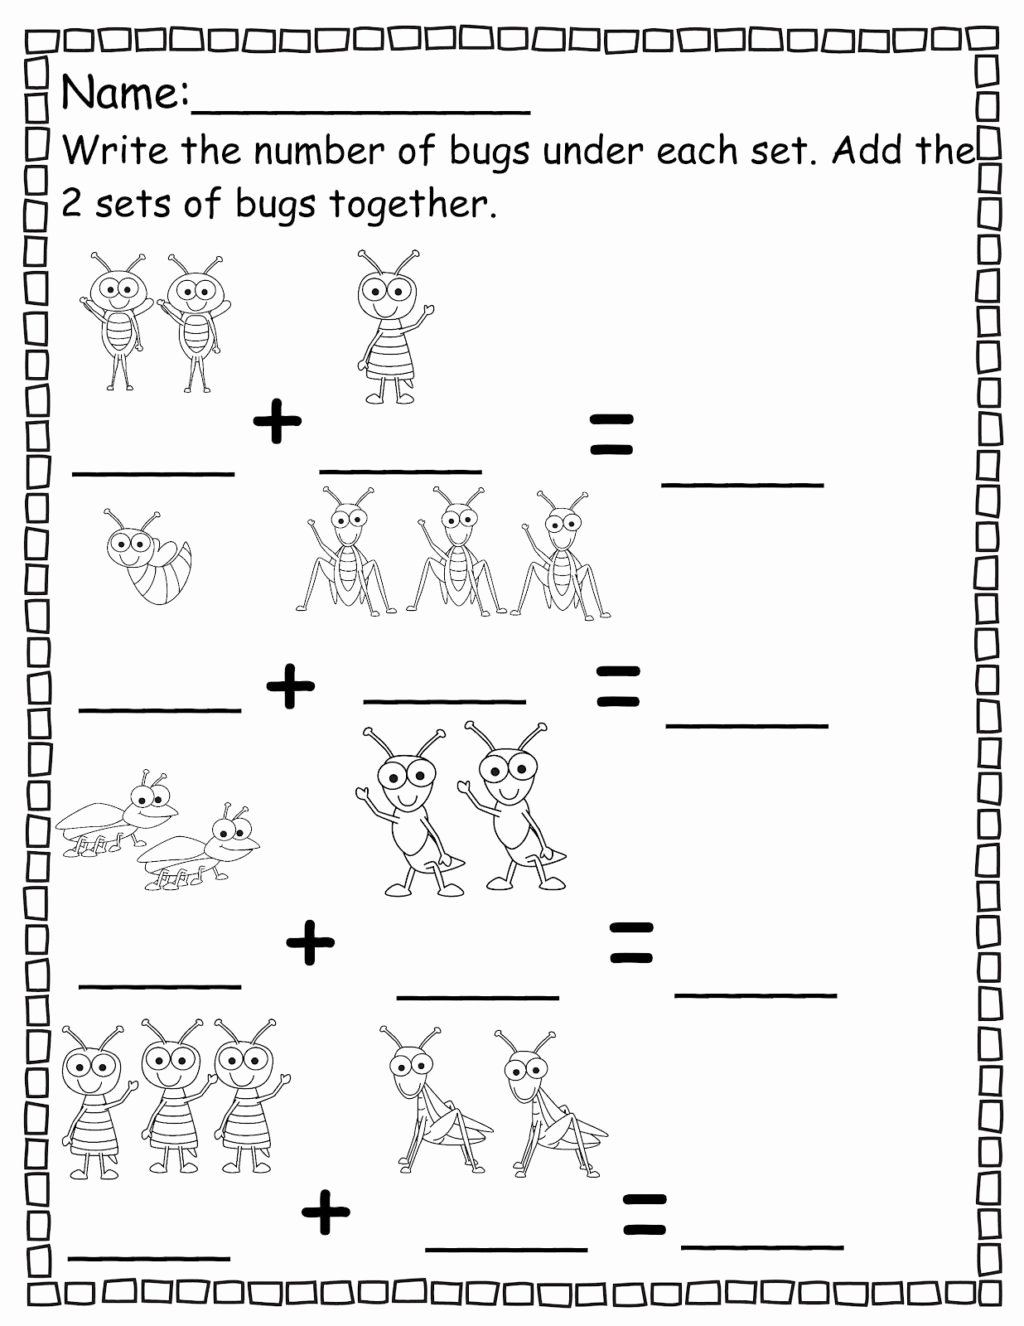 Counting Bugs Worksheets For Preschoolers